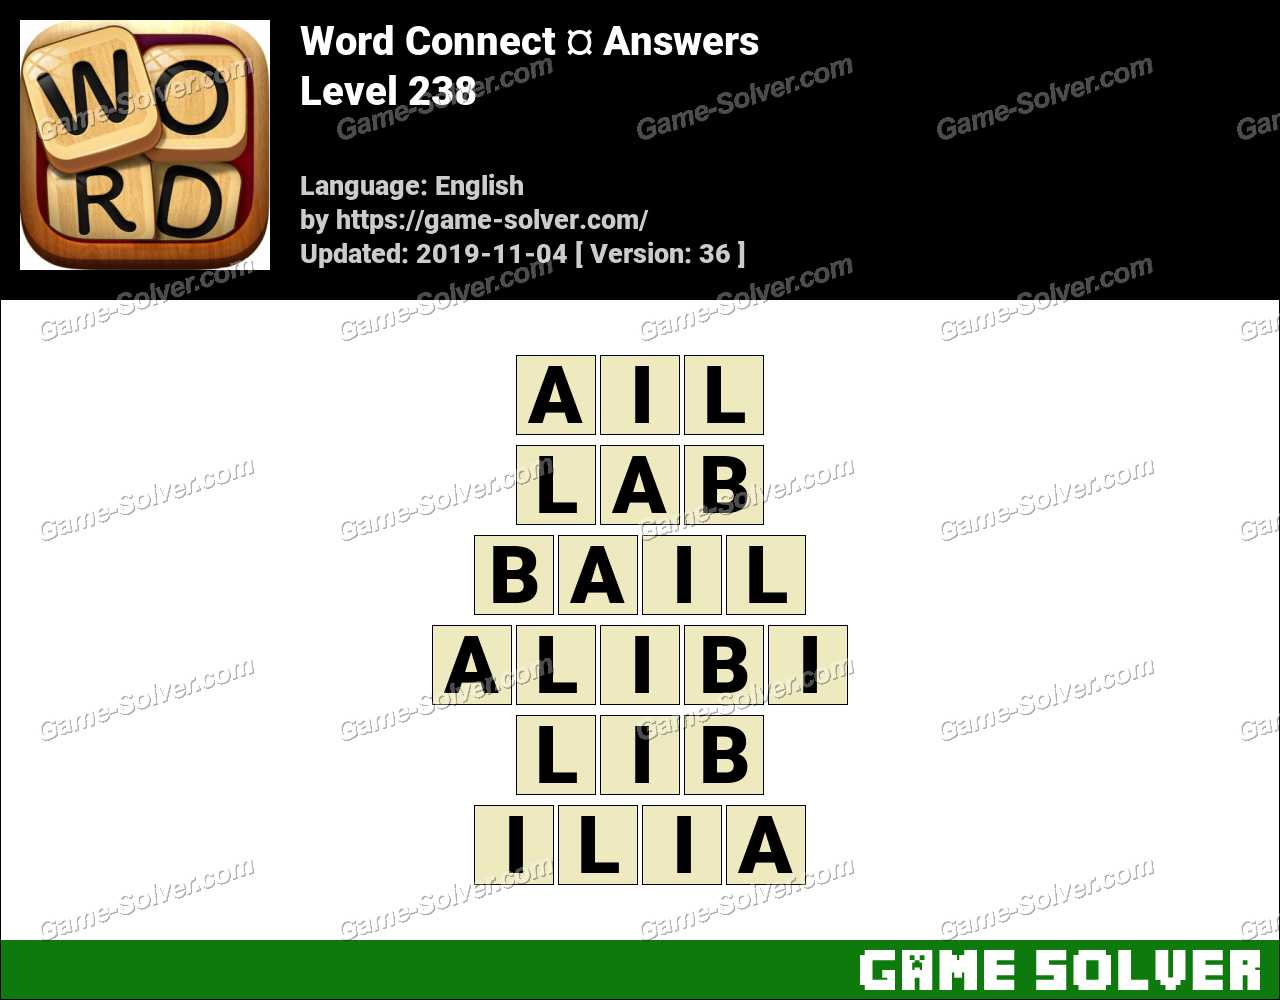 Word Connect Level 238 Answers